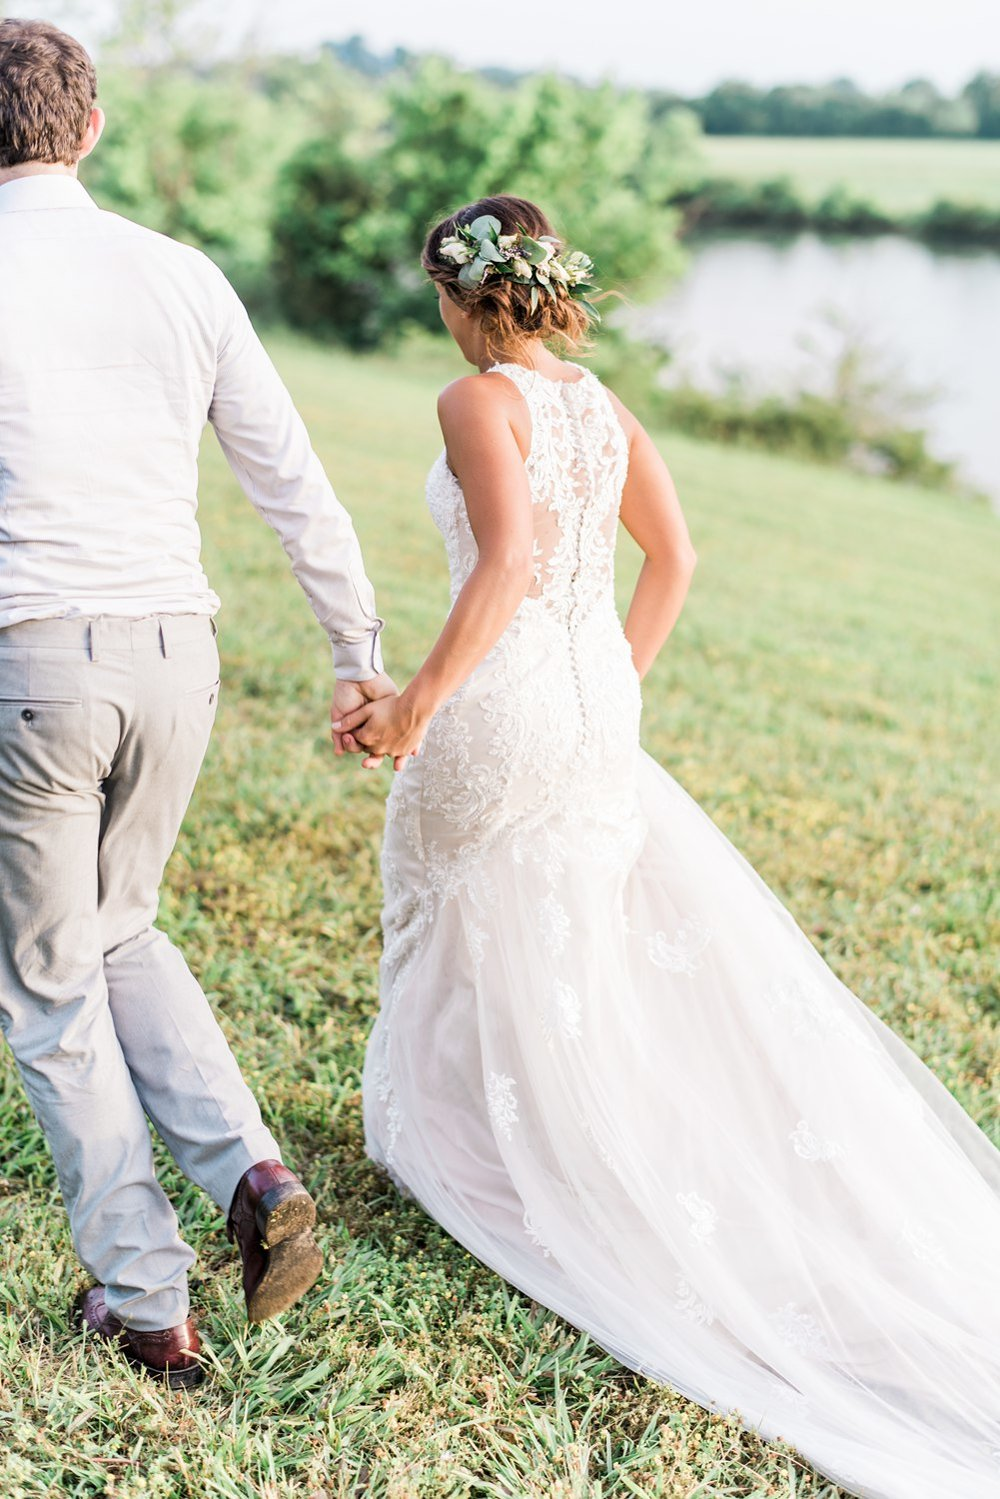 rivershackfarmwedding - alisha&evan | knoxville wedding photographer